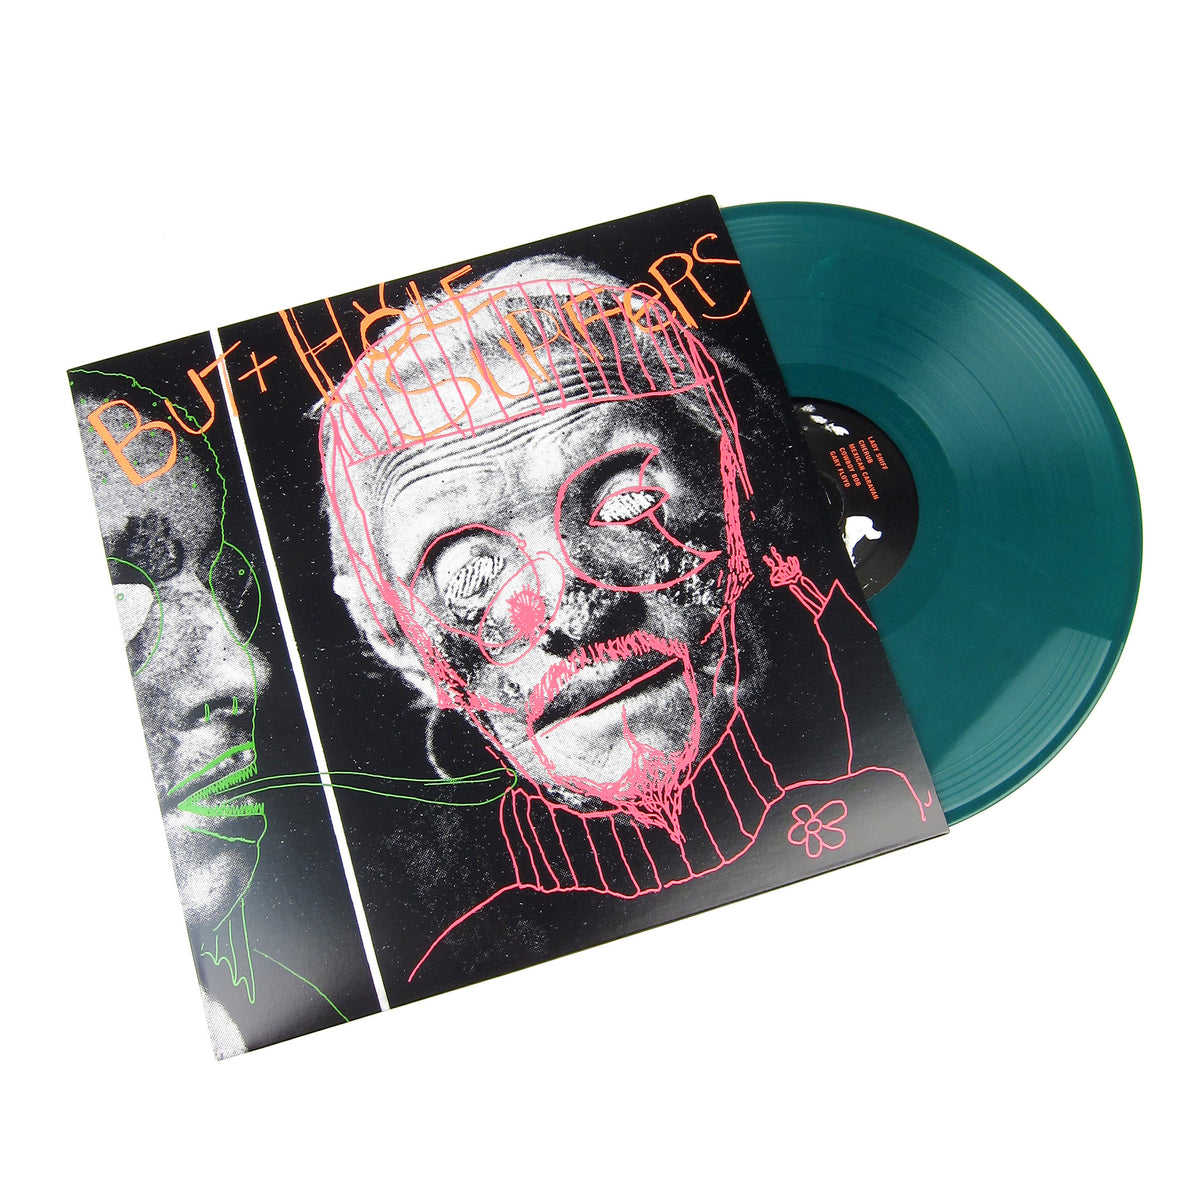 Butthole Surfers: Psychic... Powerless... Another Man's Sac (Colored Vinyl) Vinyl LP